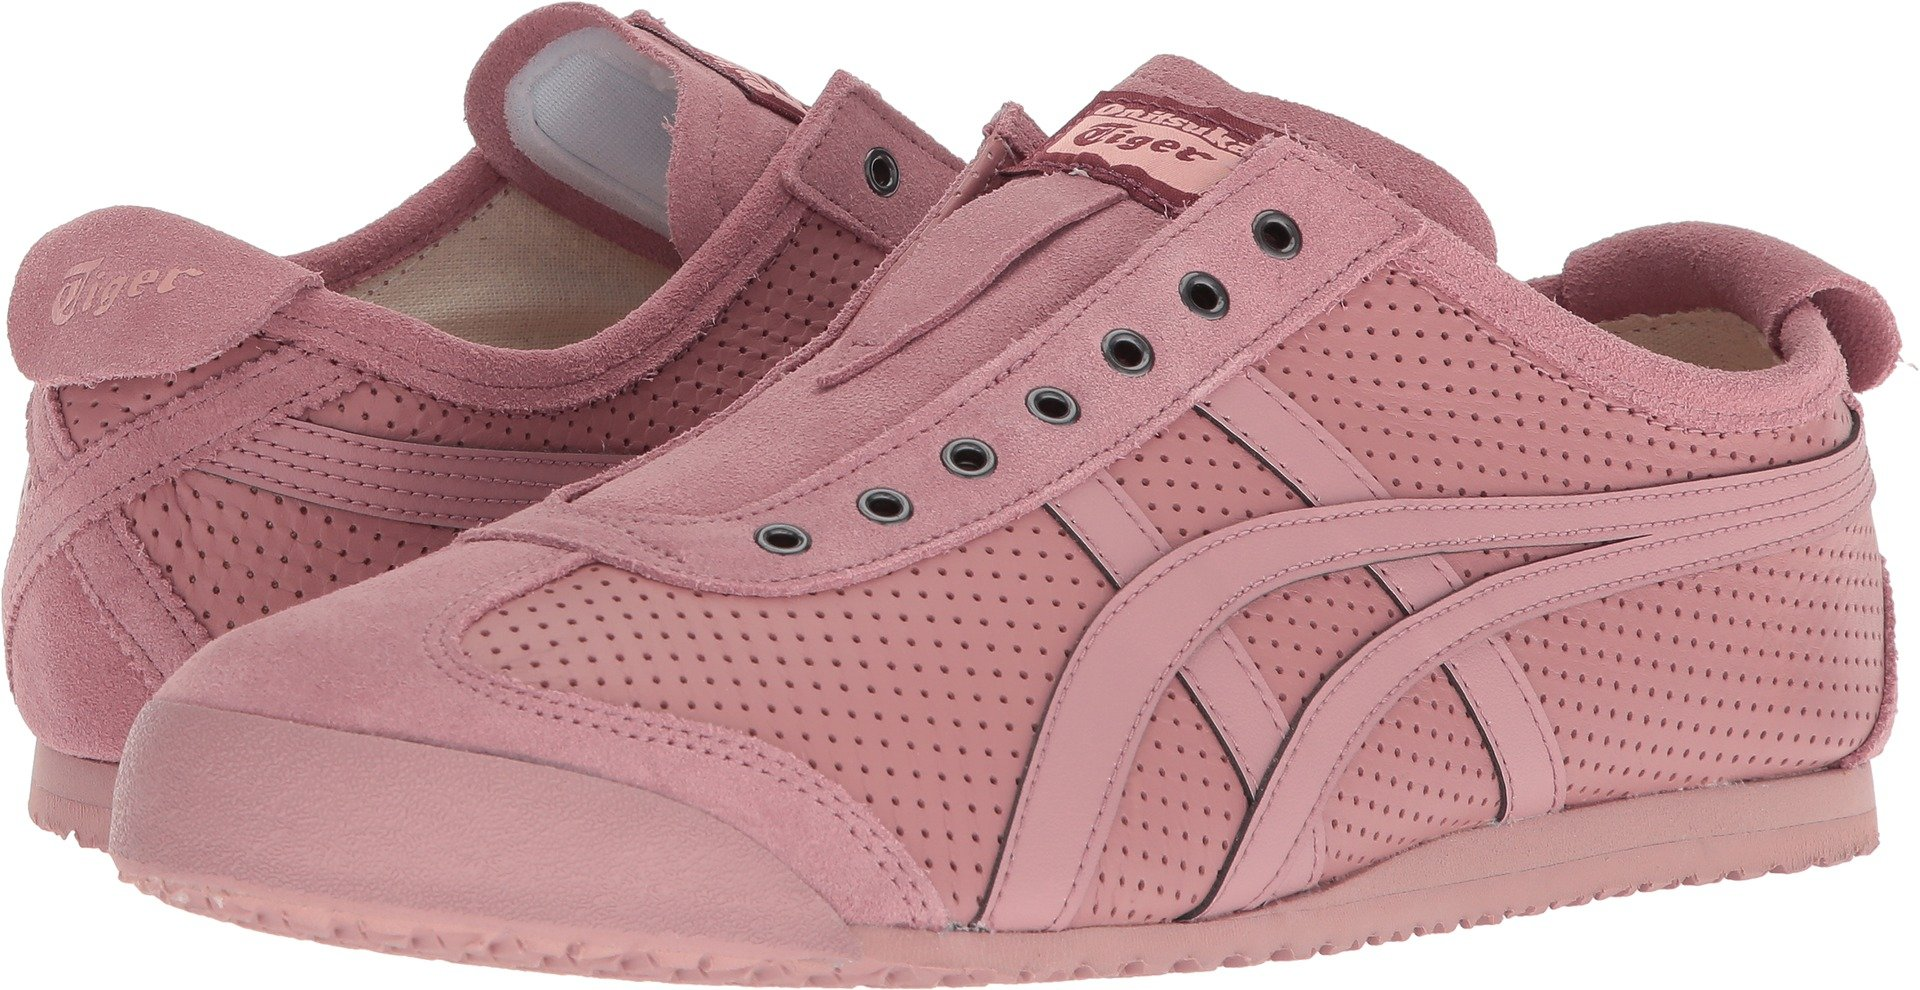 Onitsuka Tiger by Asics Unisex Mexico 66 Slip-On Ash Rose/Ash Rose 11 M US